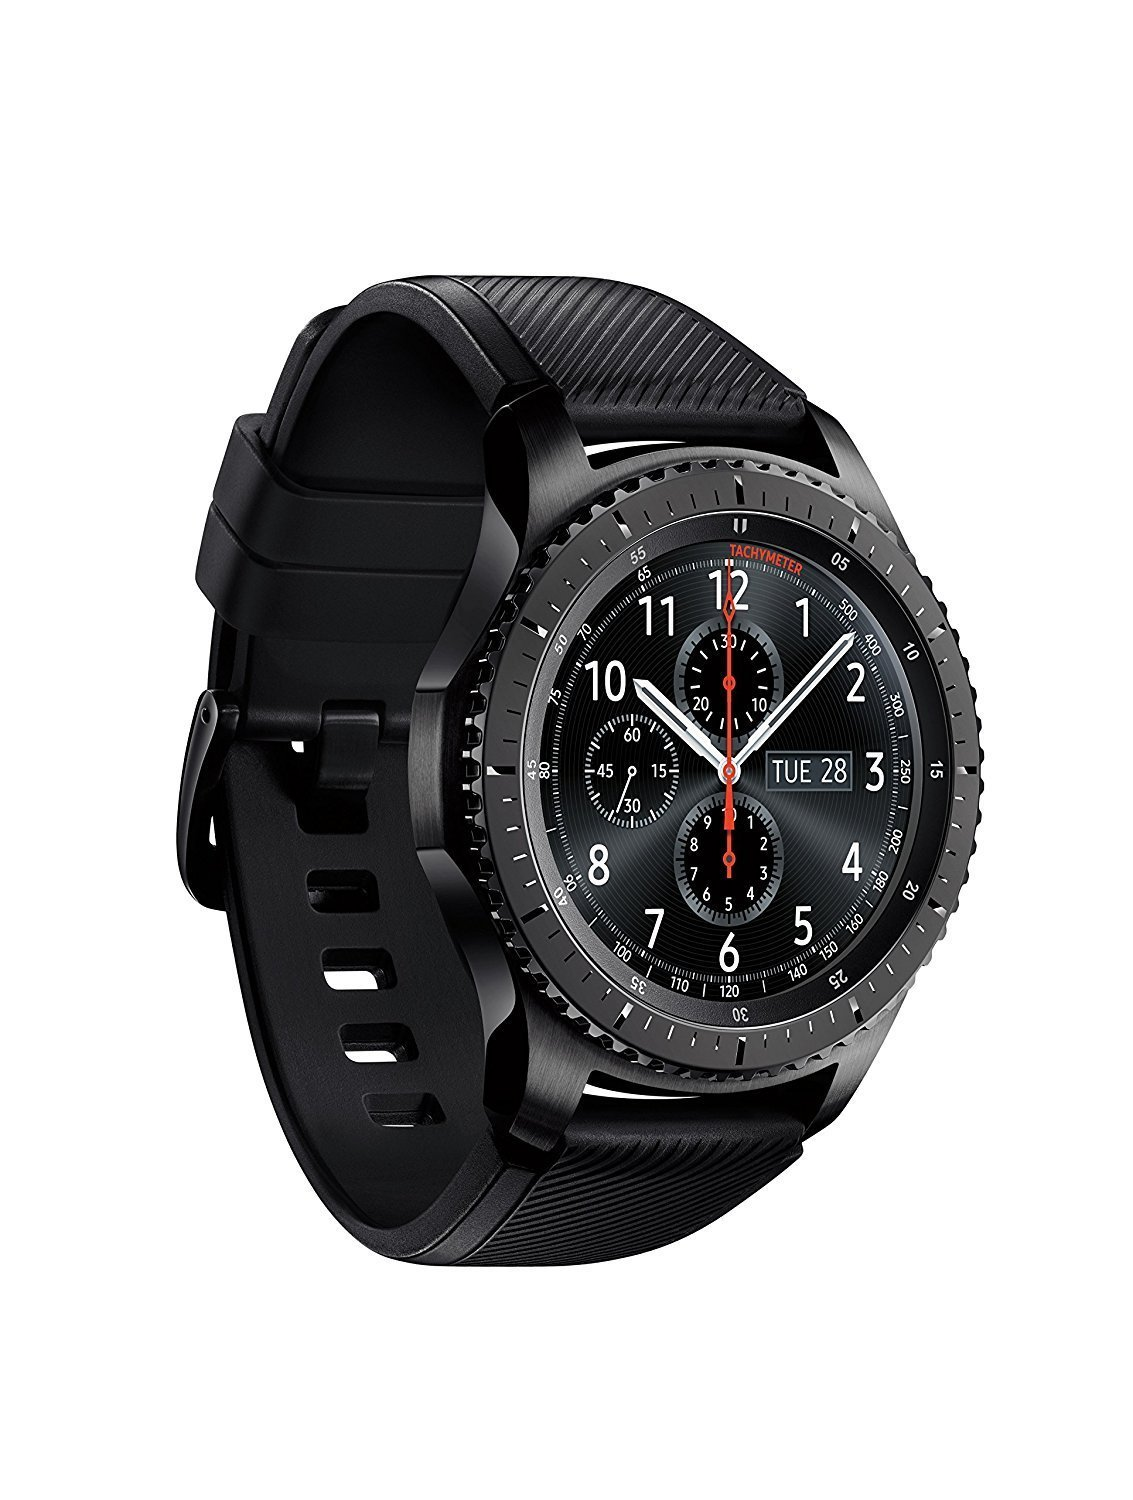 Amazon.com: SAMSUNG Gear S3 Frontier Smartwatch 46MM w/Small ...